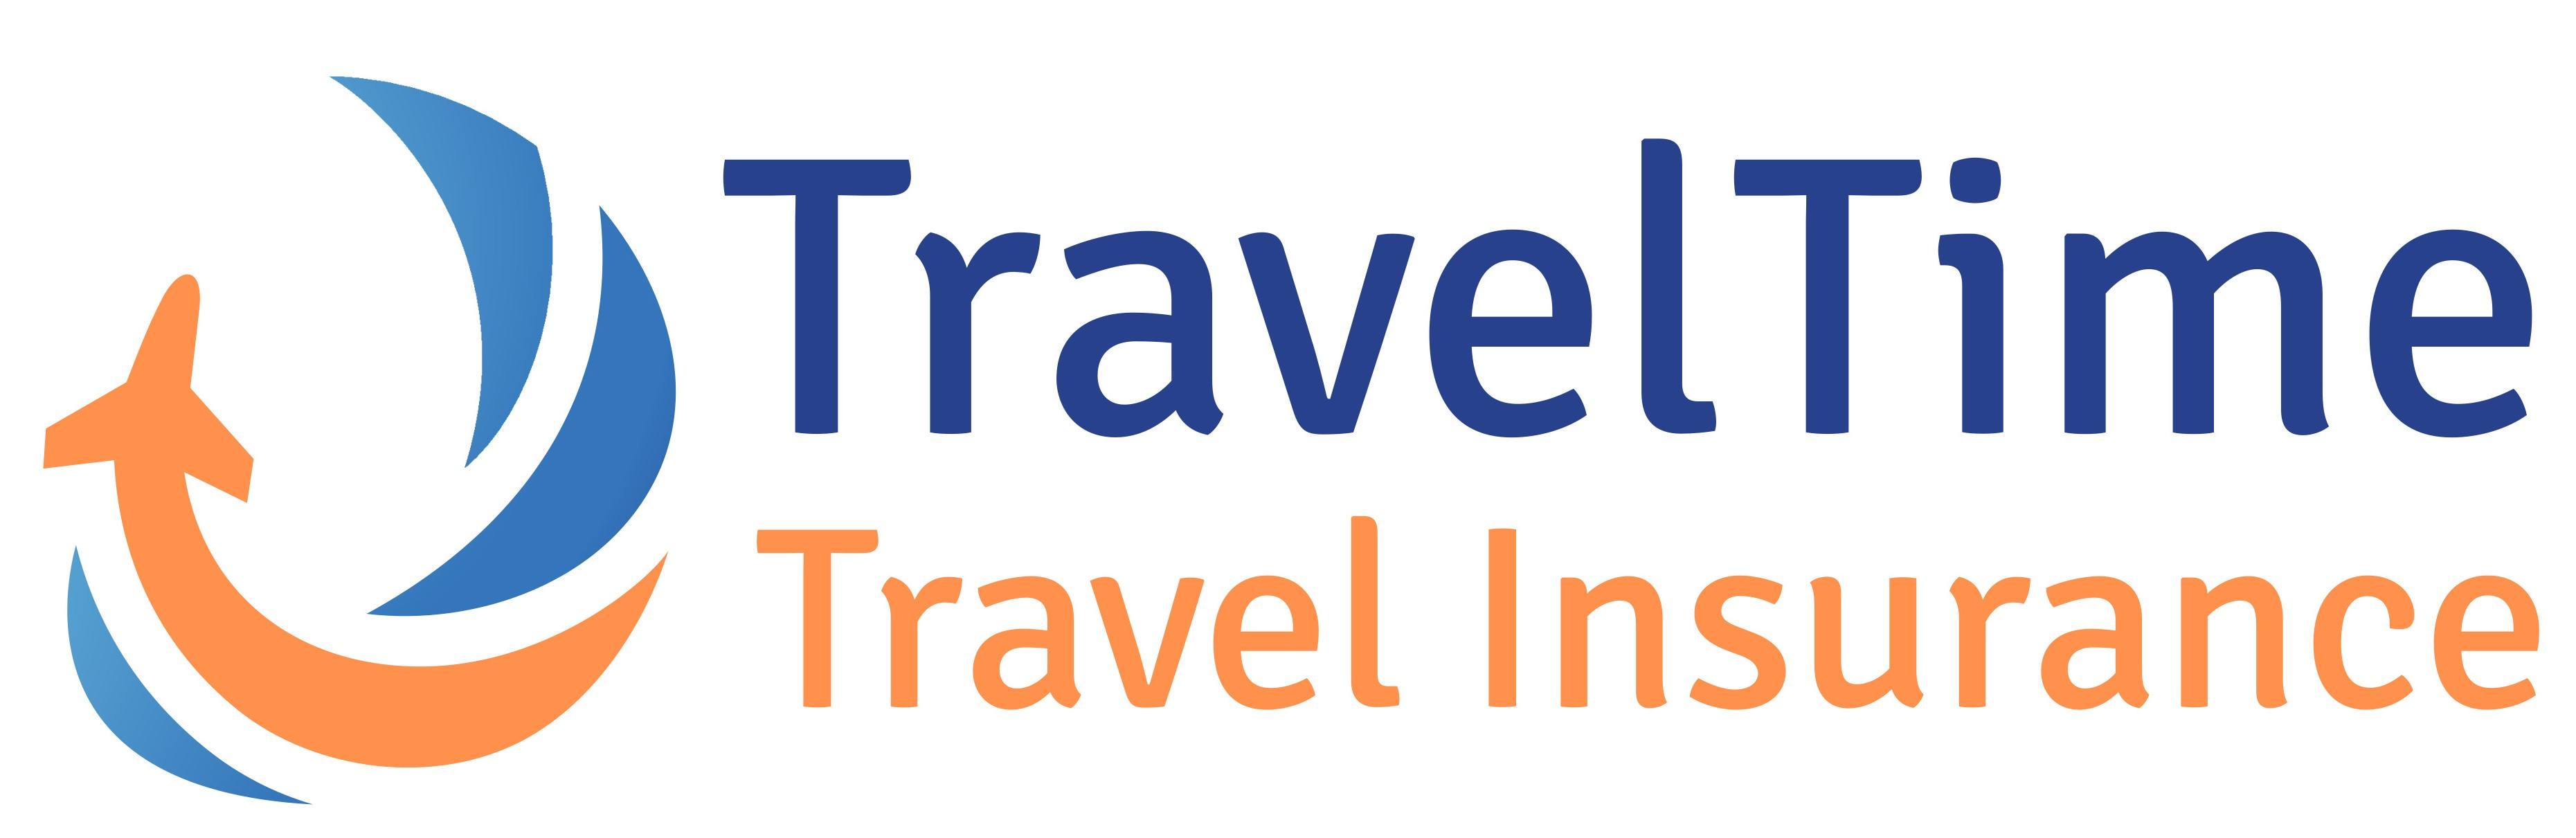 Read TravelTime Travel Insurance Reviews